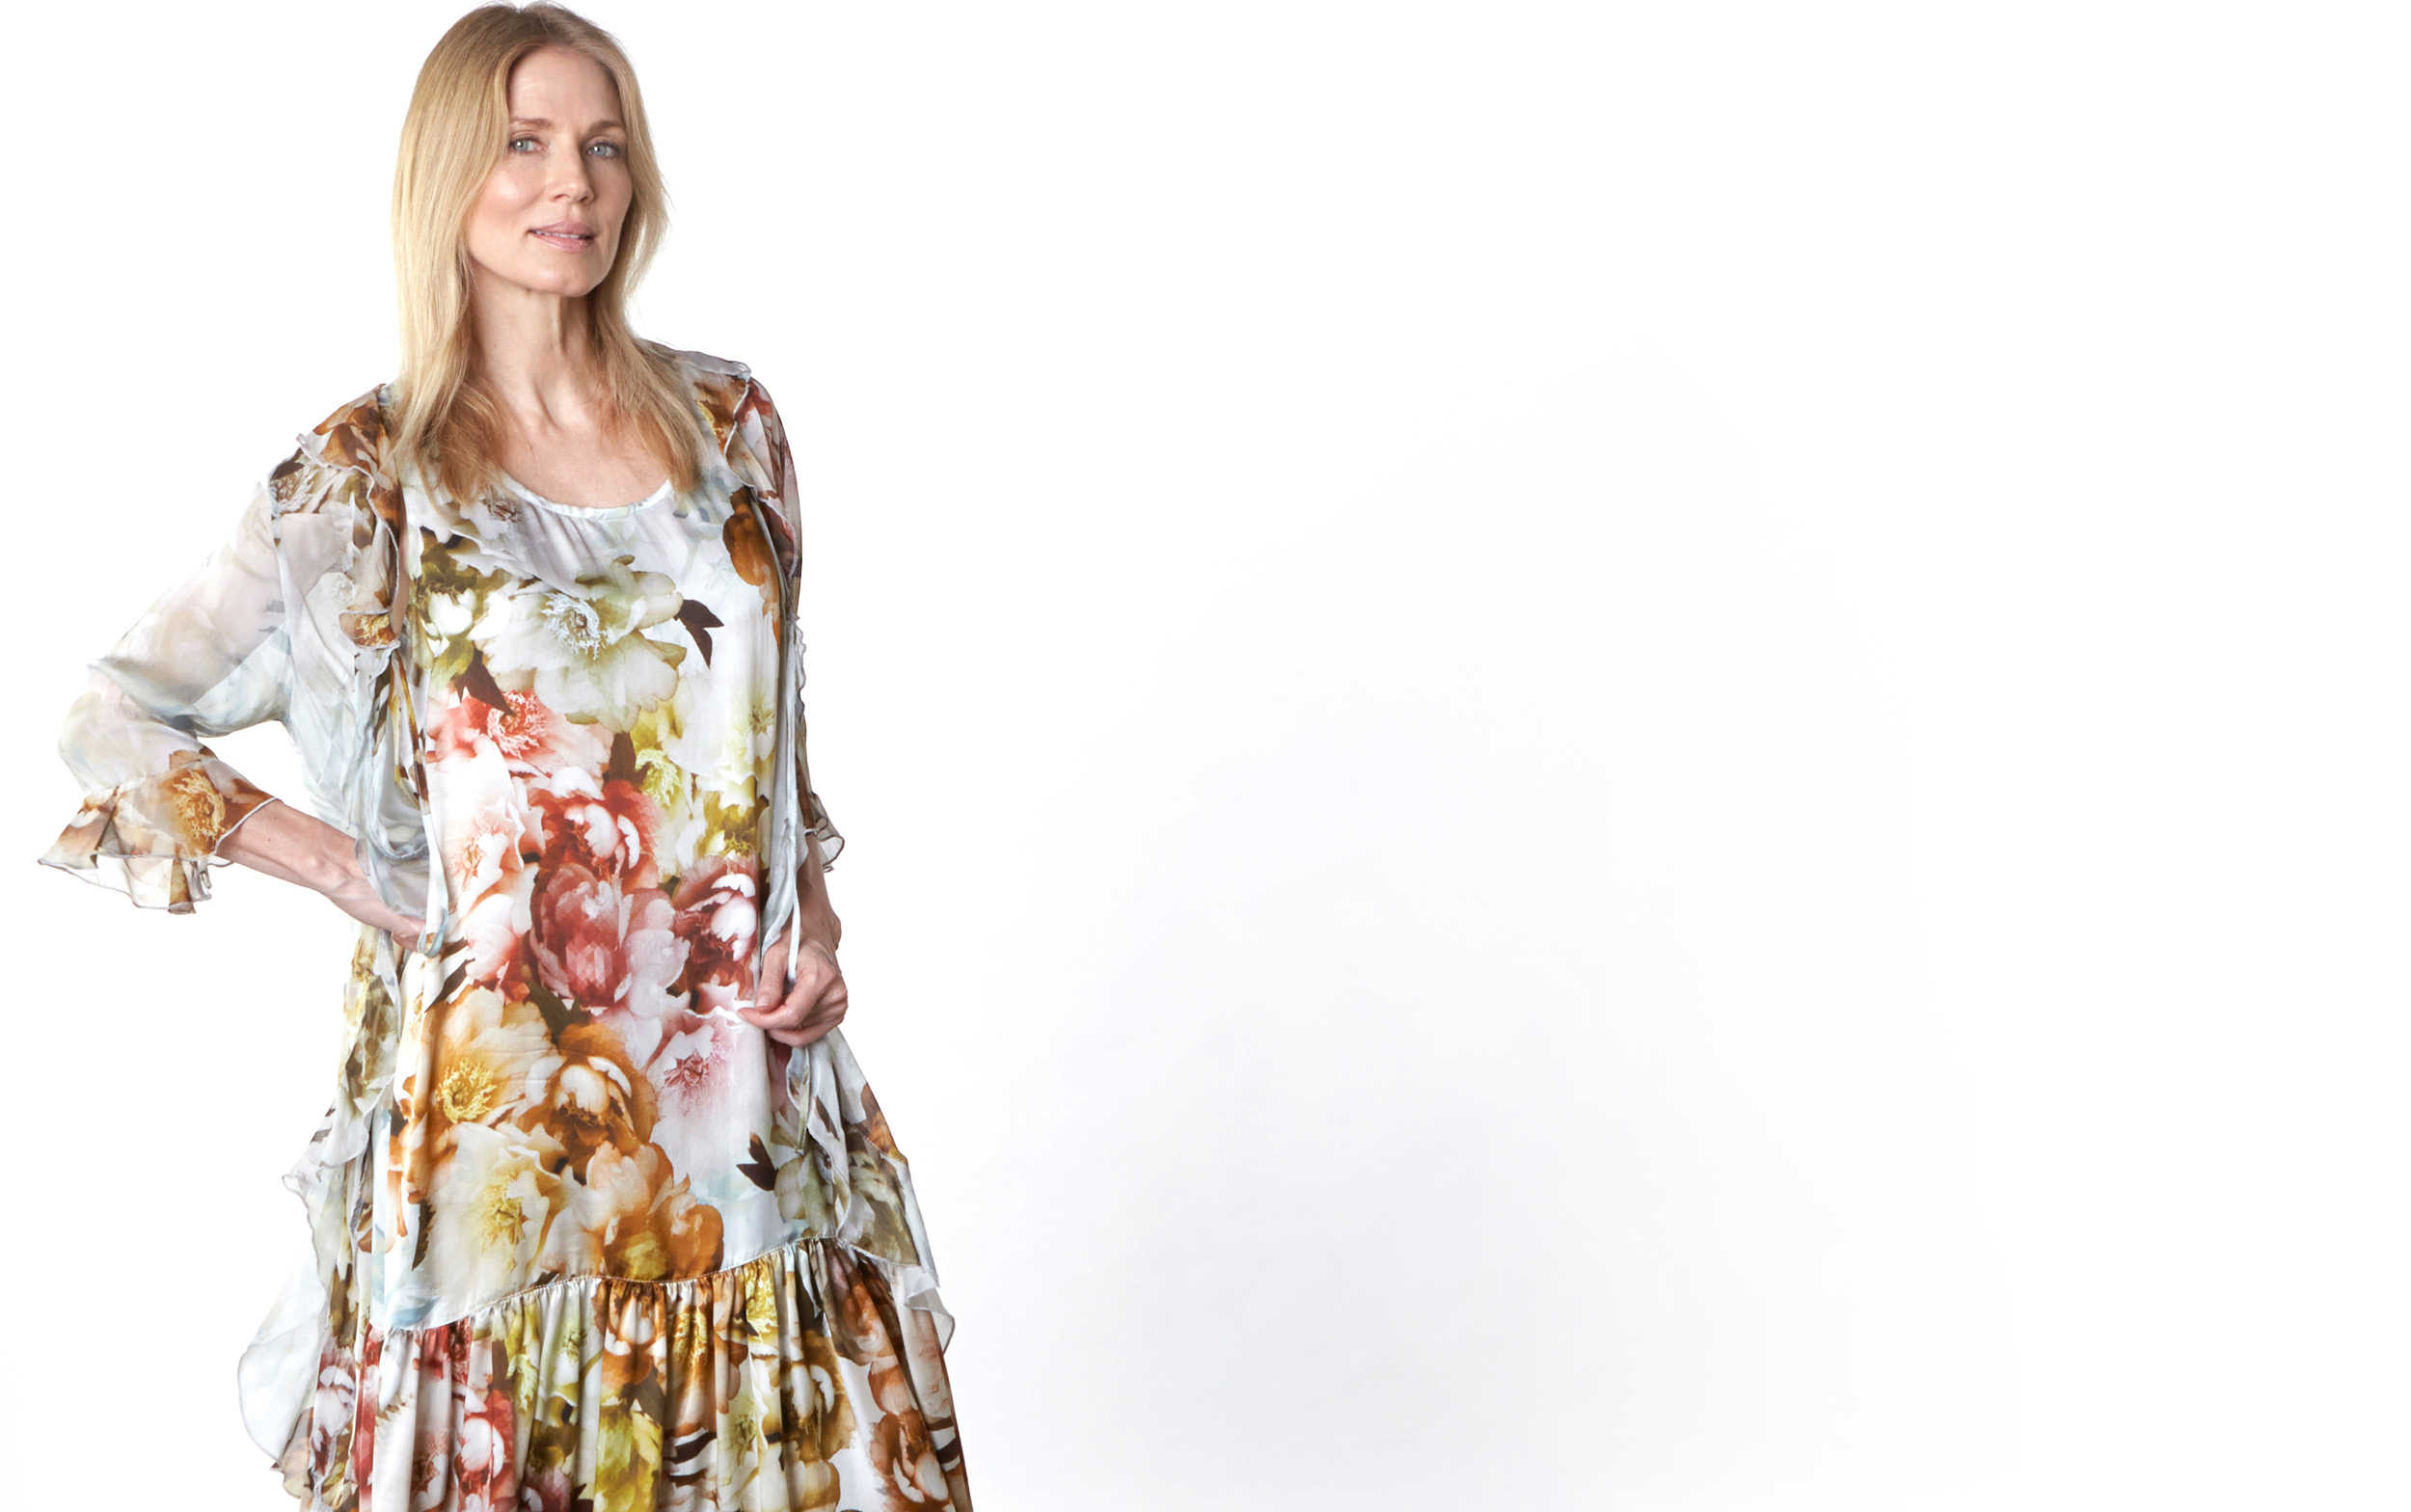 Camille Cardigan in Borghese Italian Sheer Silk, Salome Dress in Borghese Italian Silk